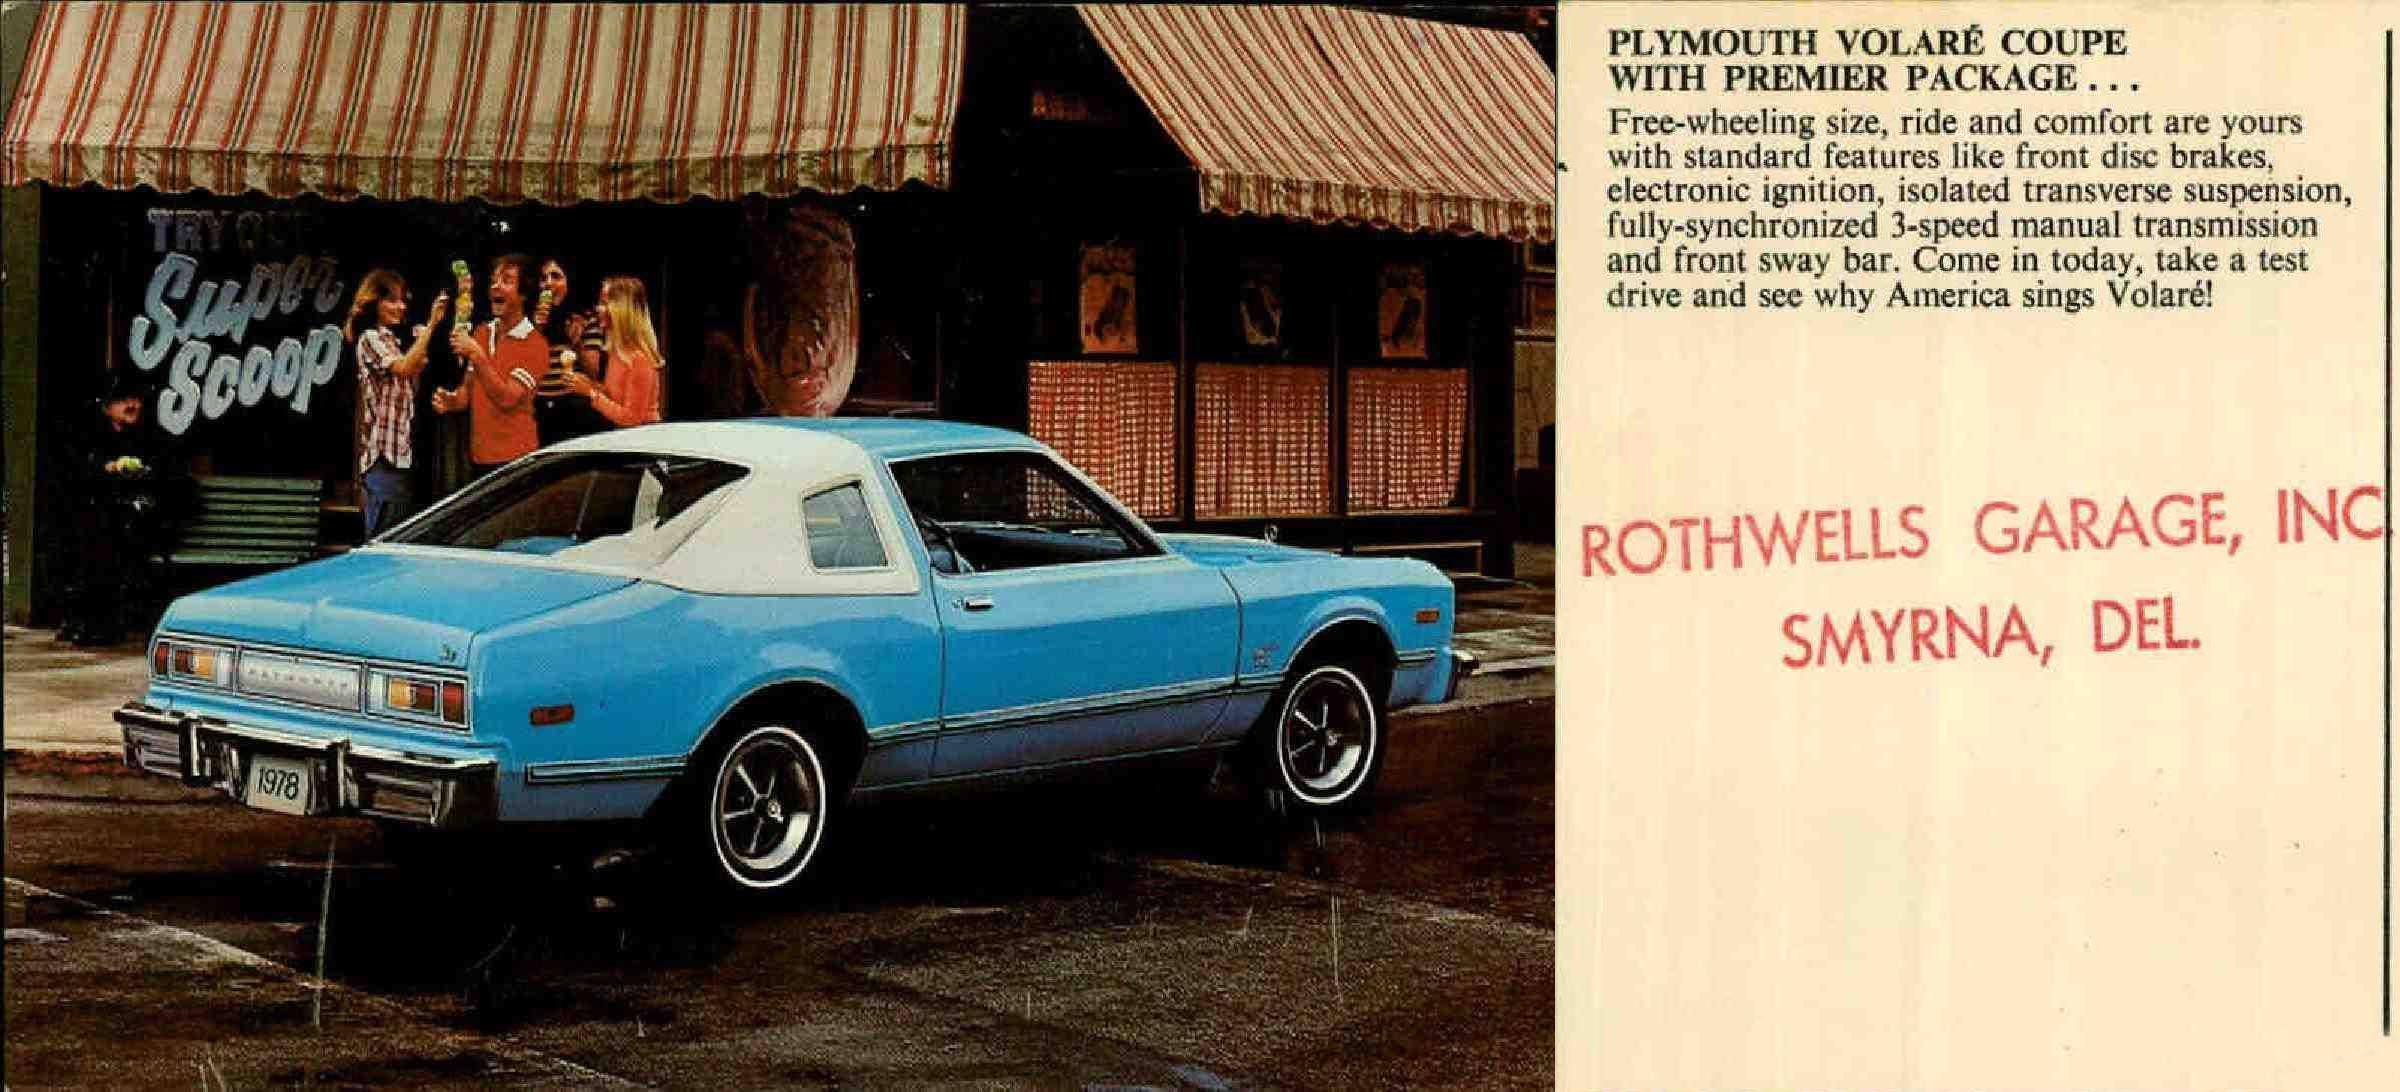 1978 Plymouth Volare Coupe sales postcard. From the Caley Postcard  collection. 9015-028-000 #851. www.archives.delaware.gov